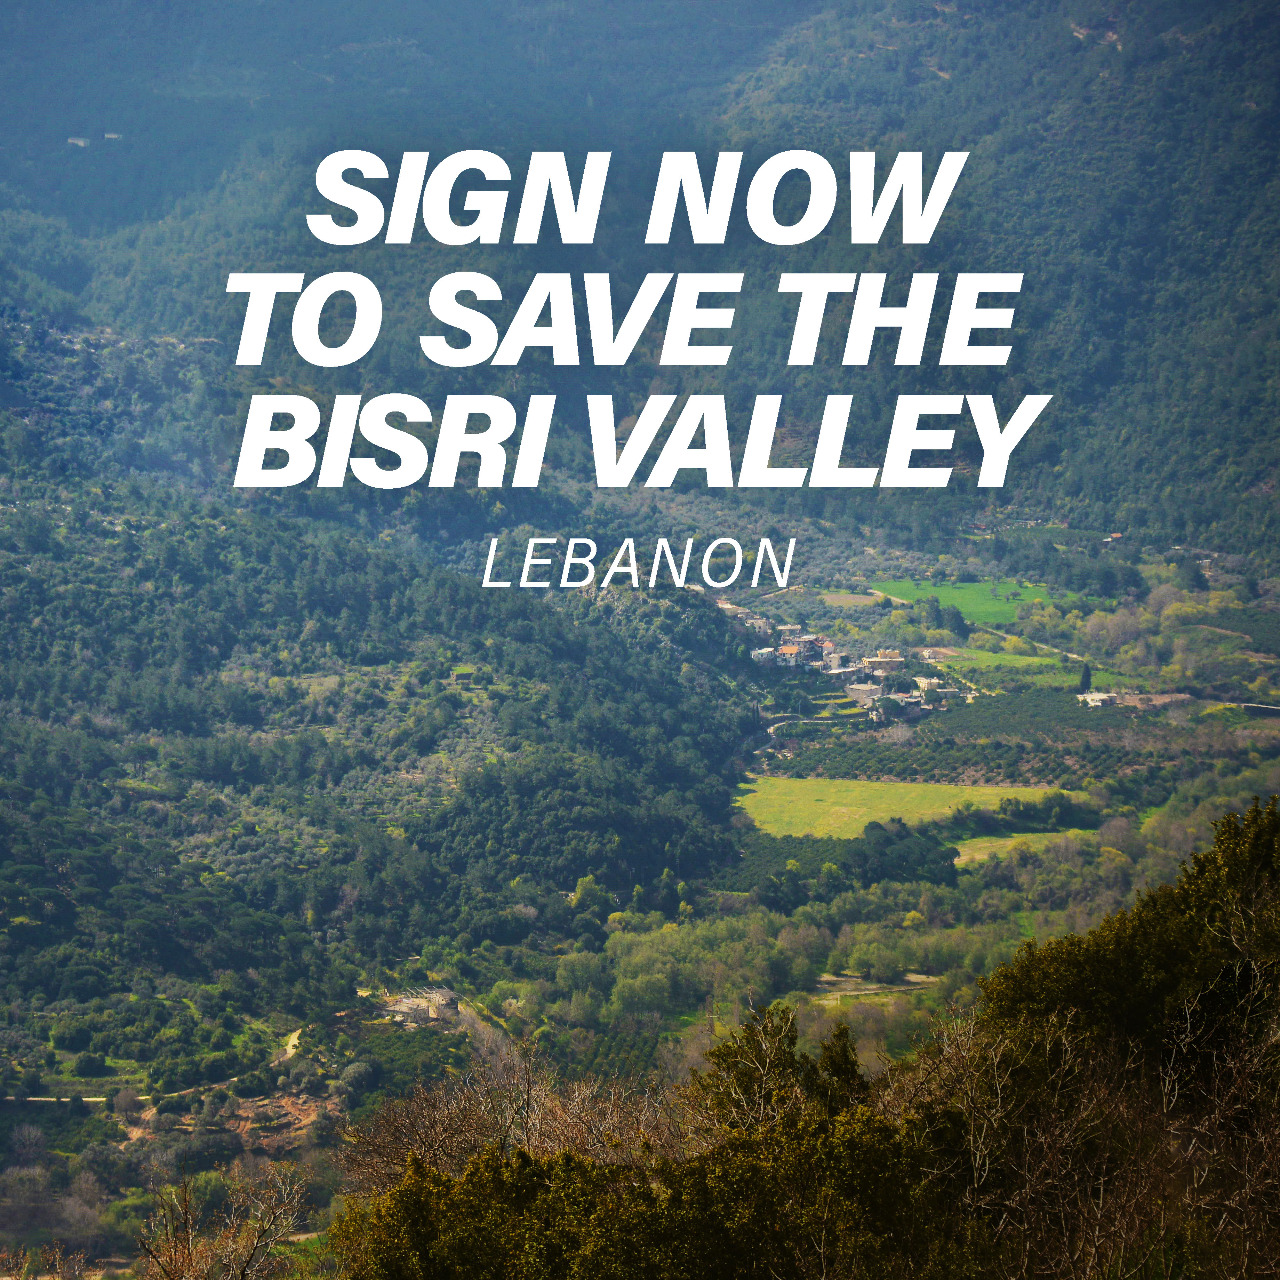 Help us save the Bisri Valley